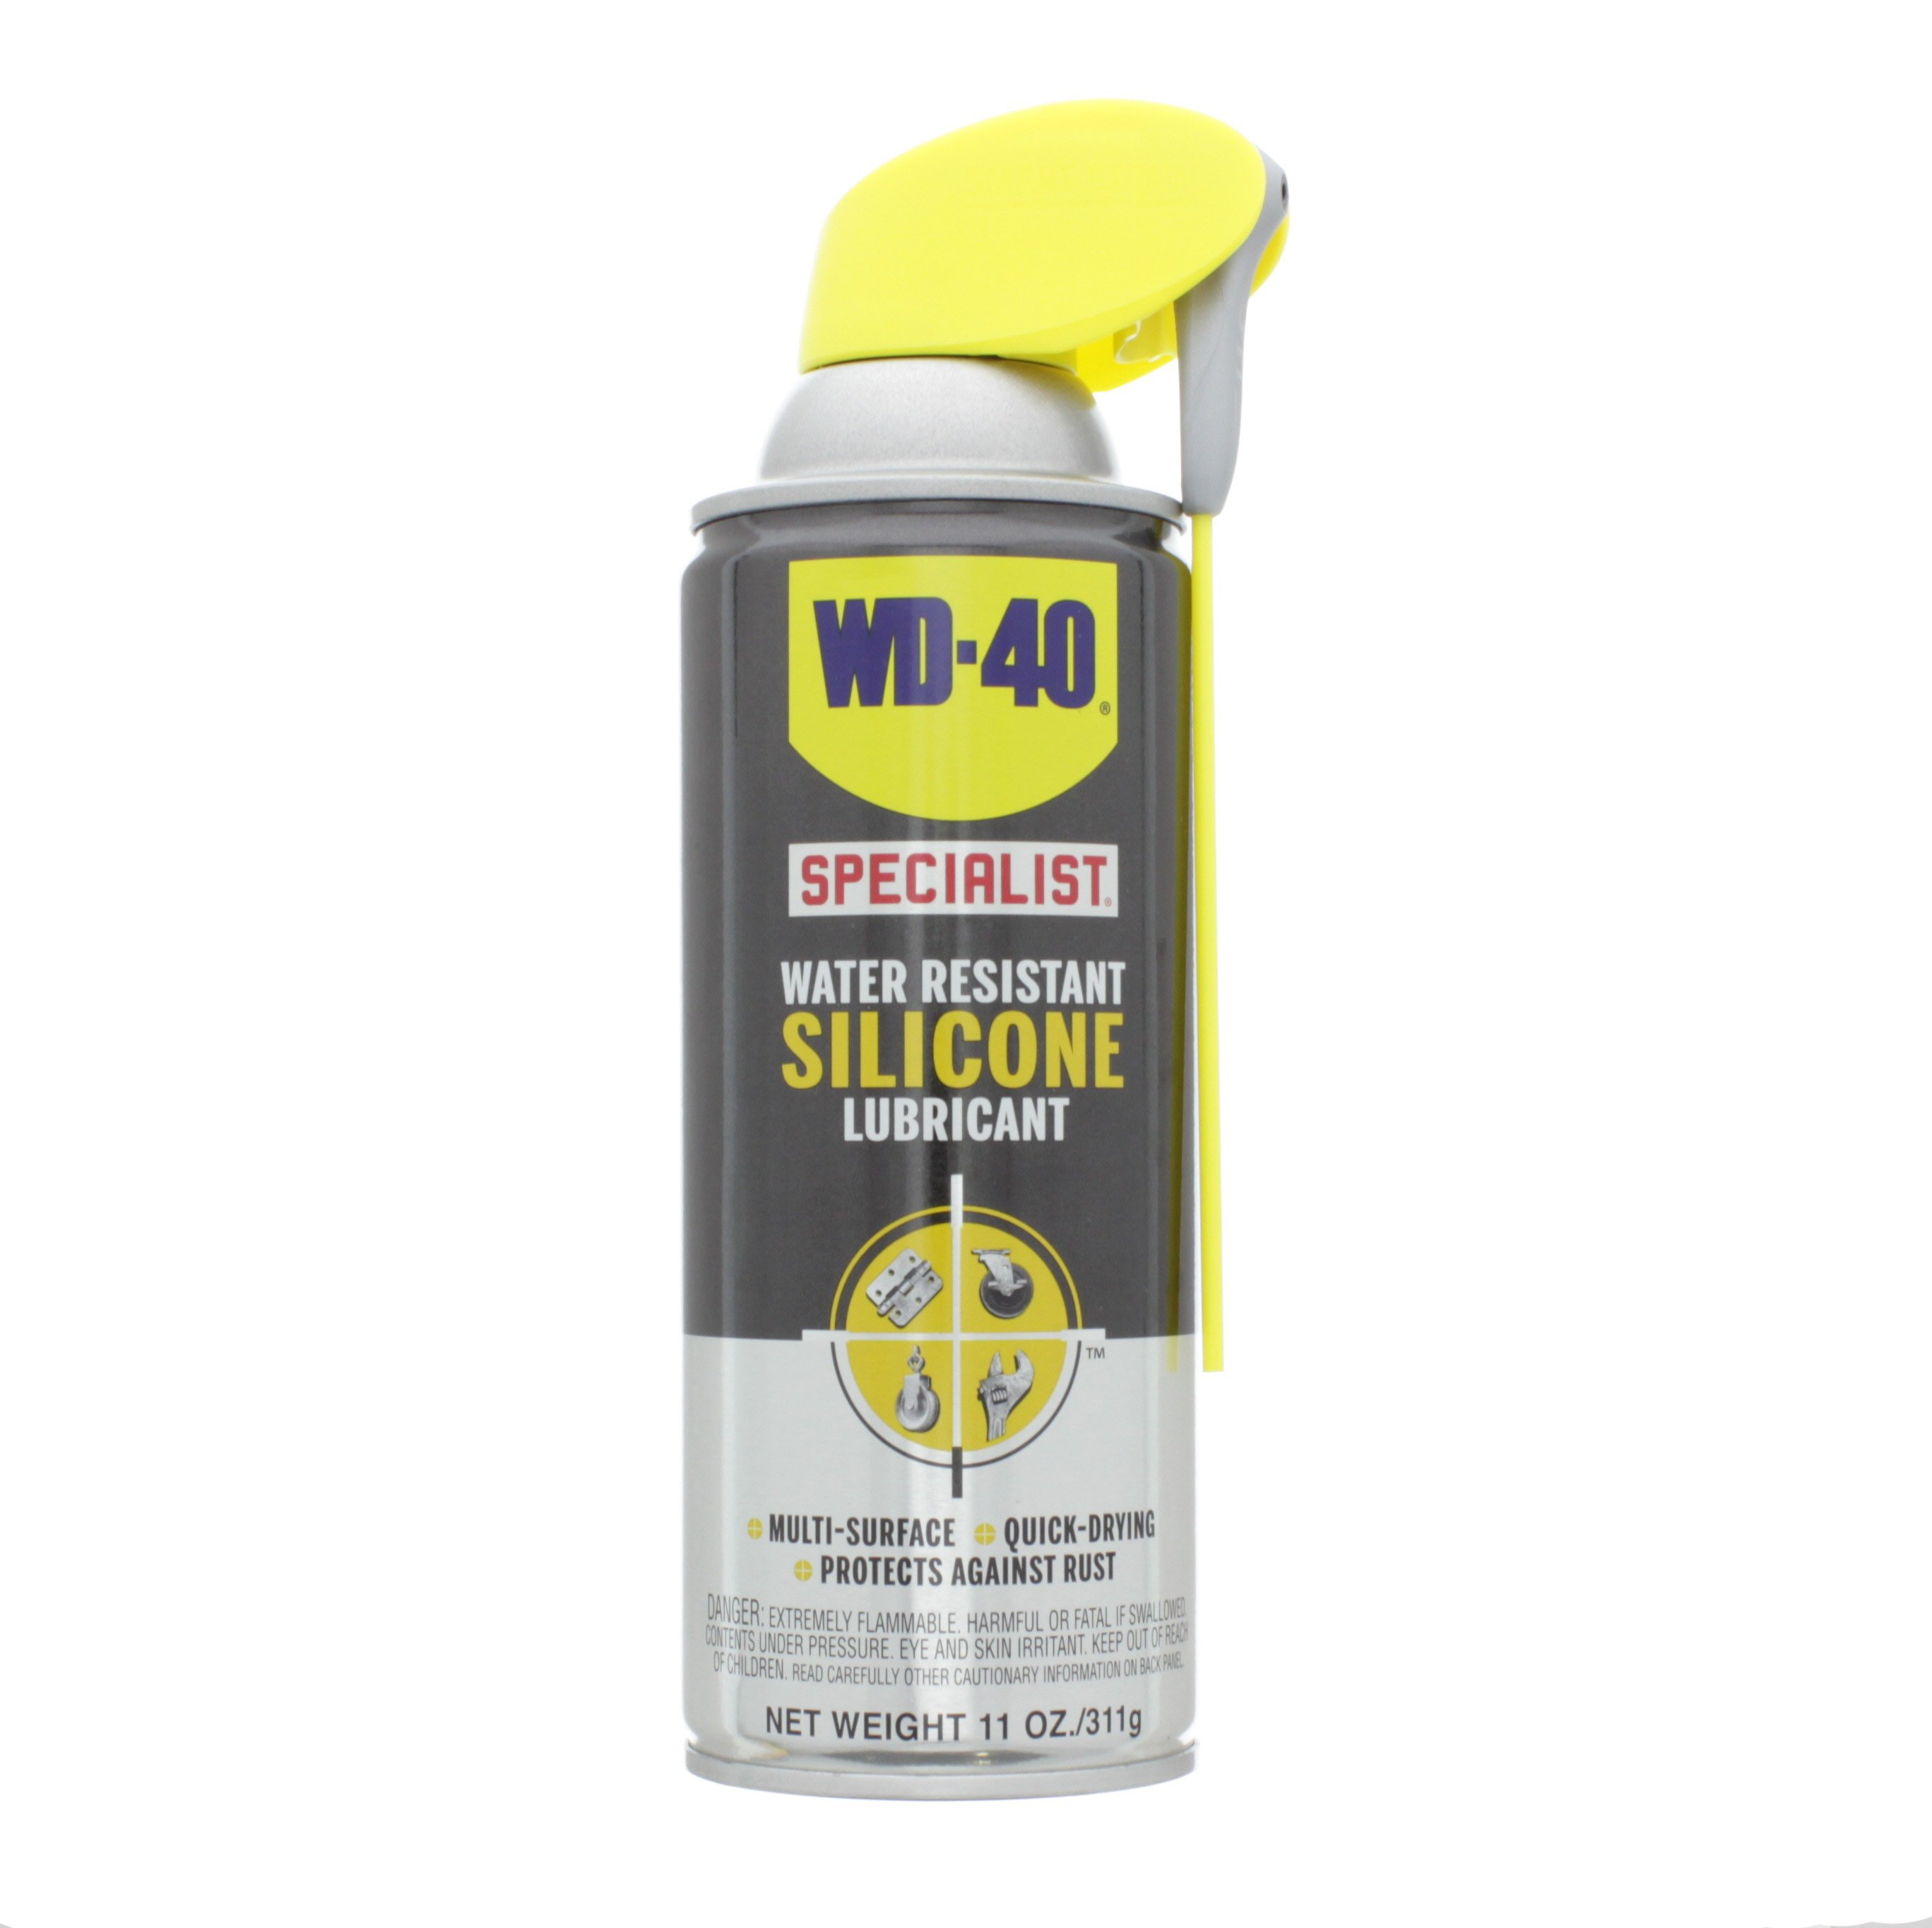 Wd 40 Specialist Water Resistance Silicone Lubricant Shop Motor Oil Fluids At H E B